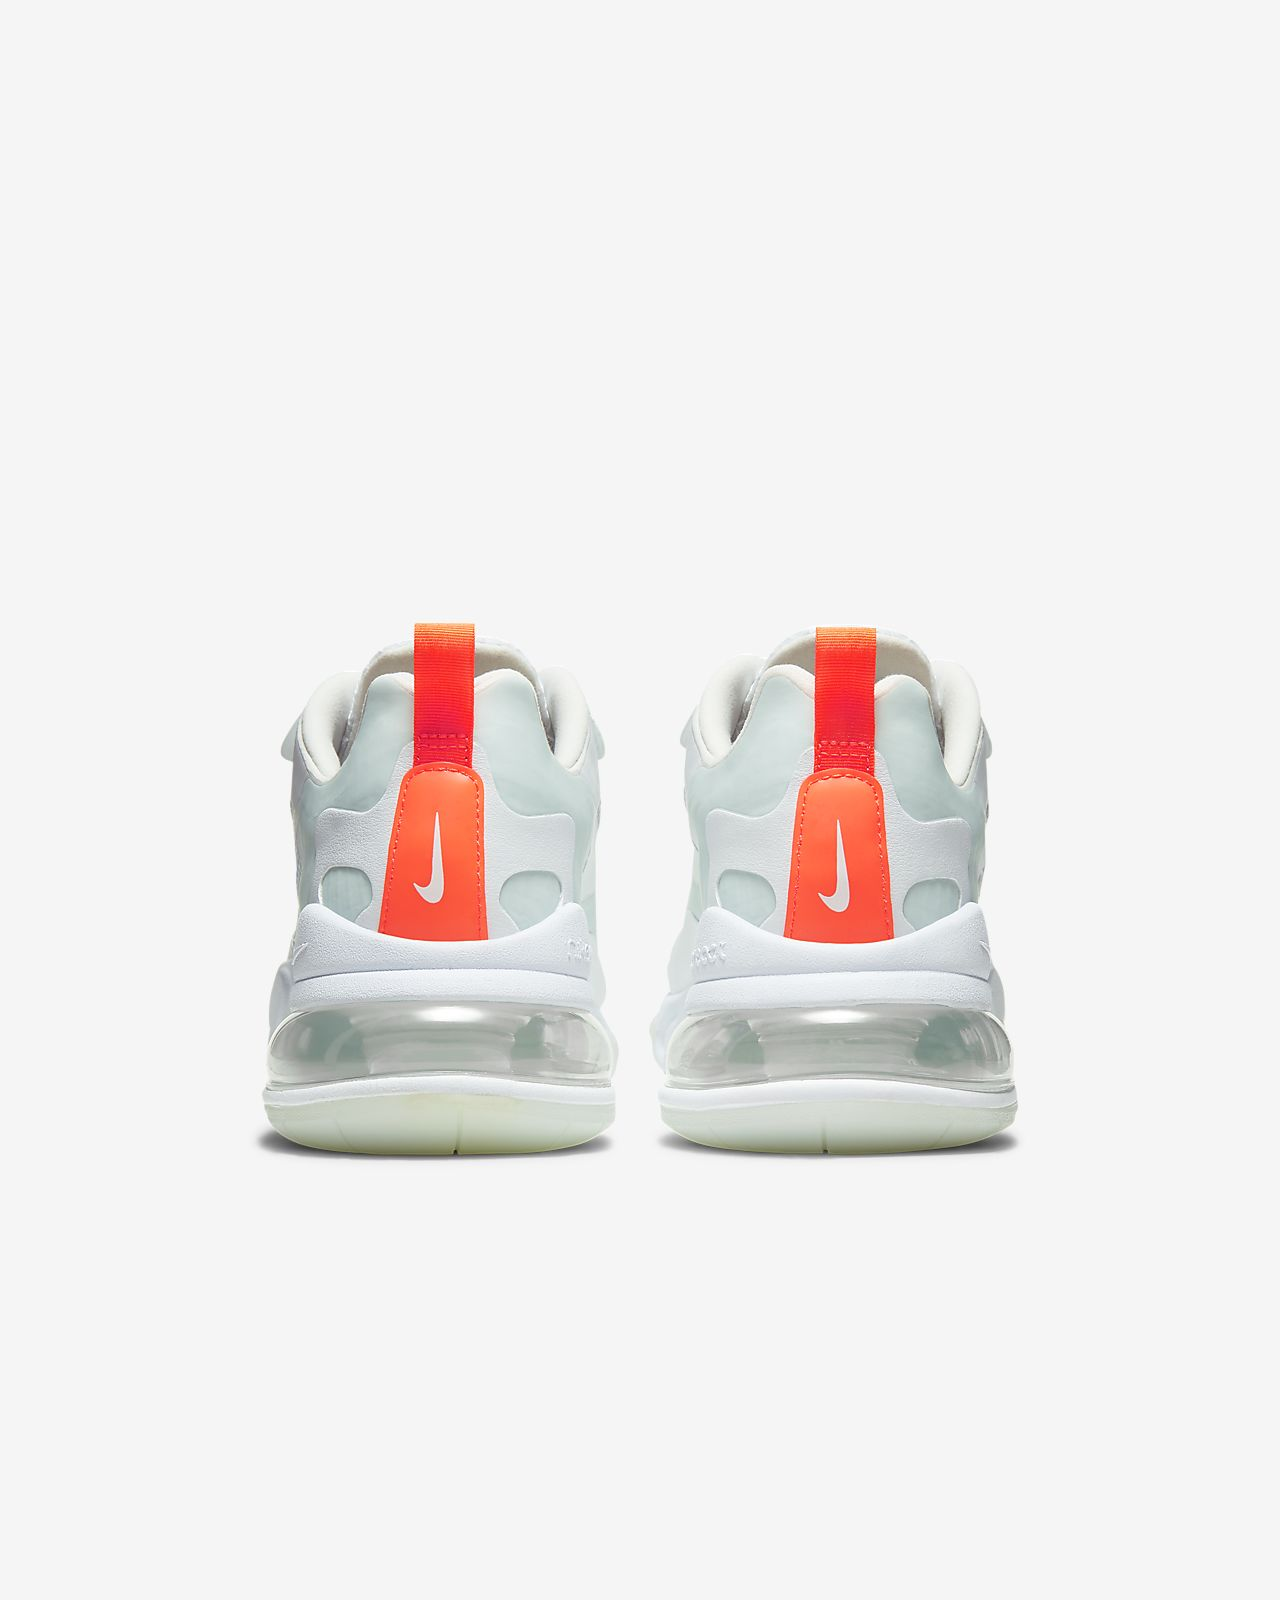 NIKE Official]Nike Air Max 270 React SE Women's Shoe.Online store